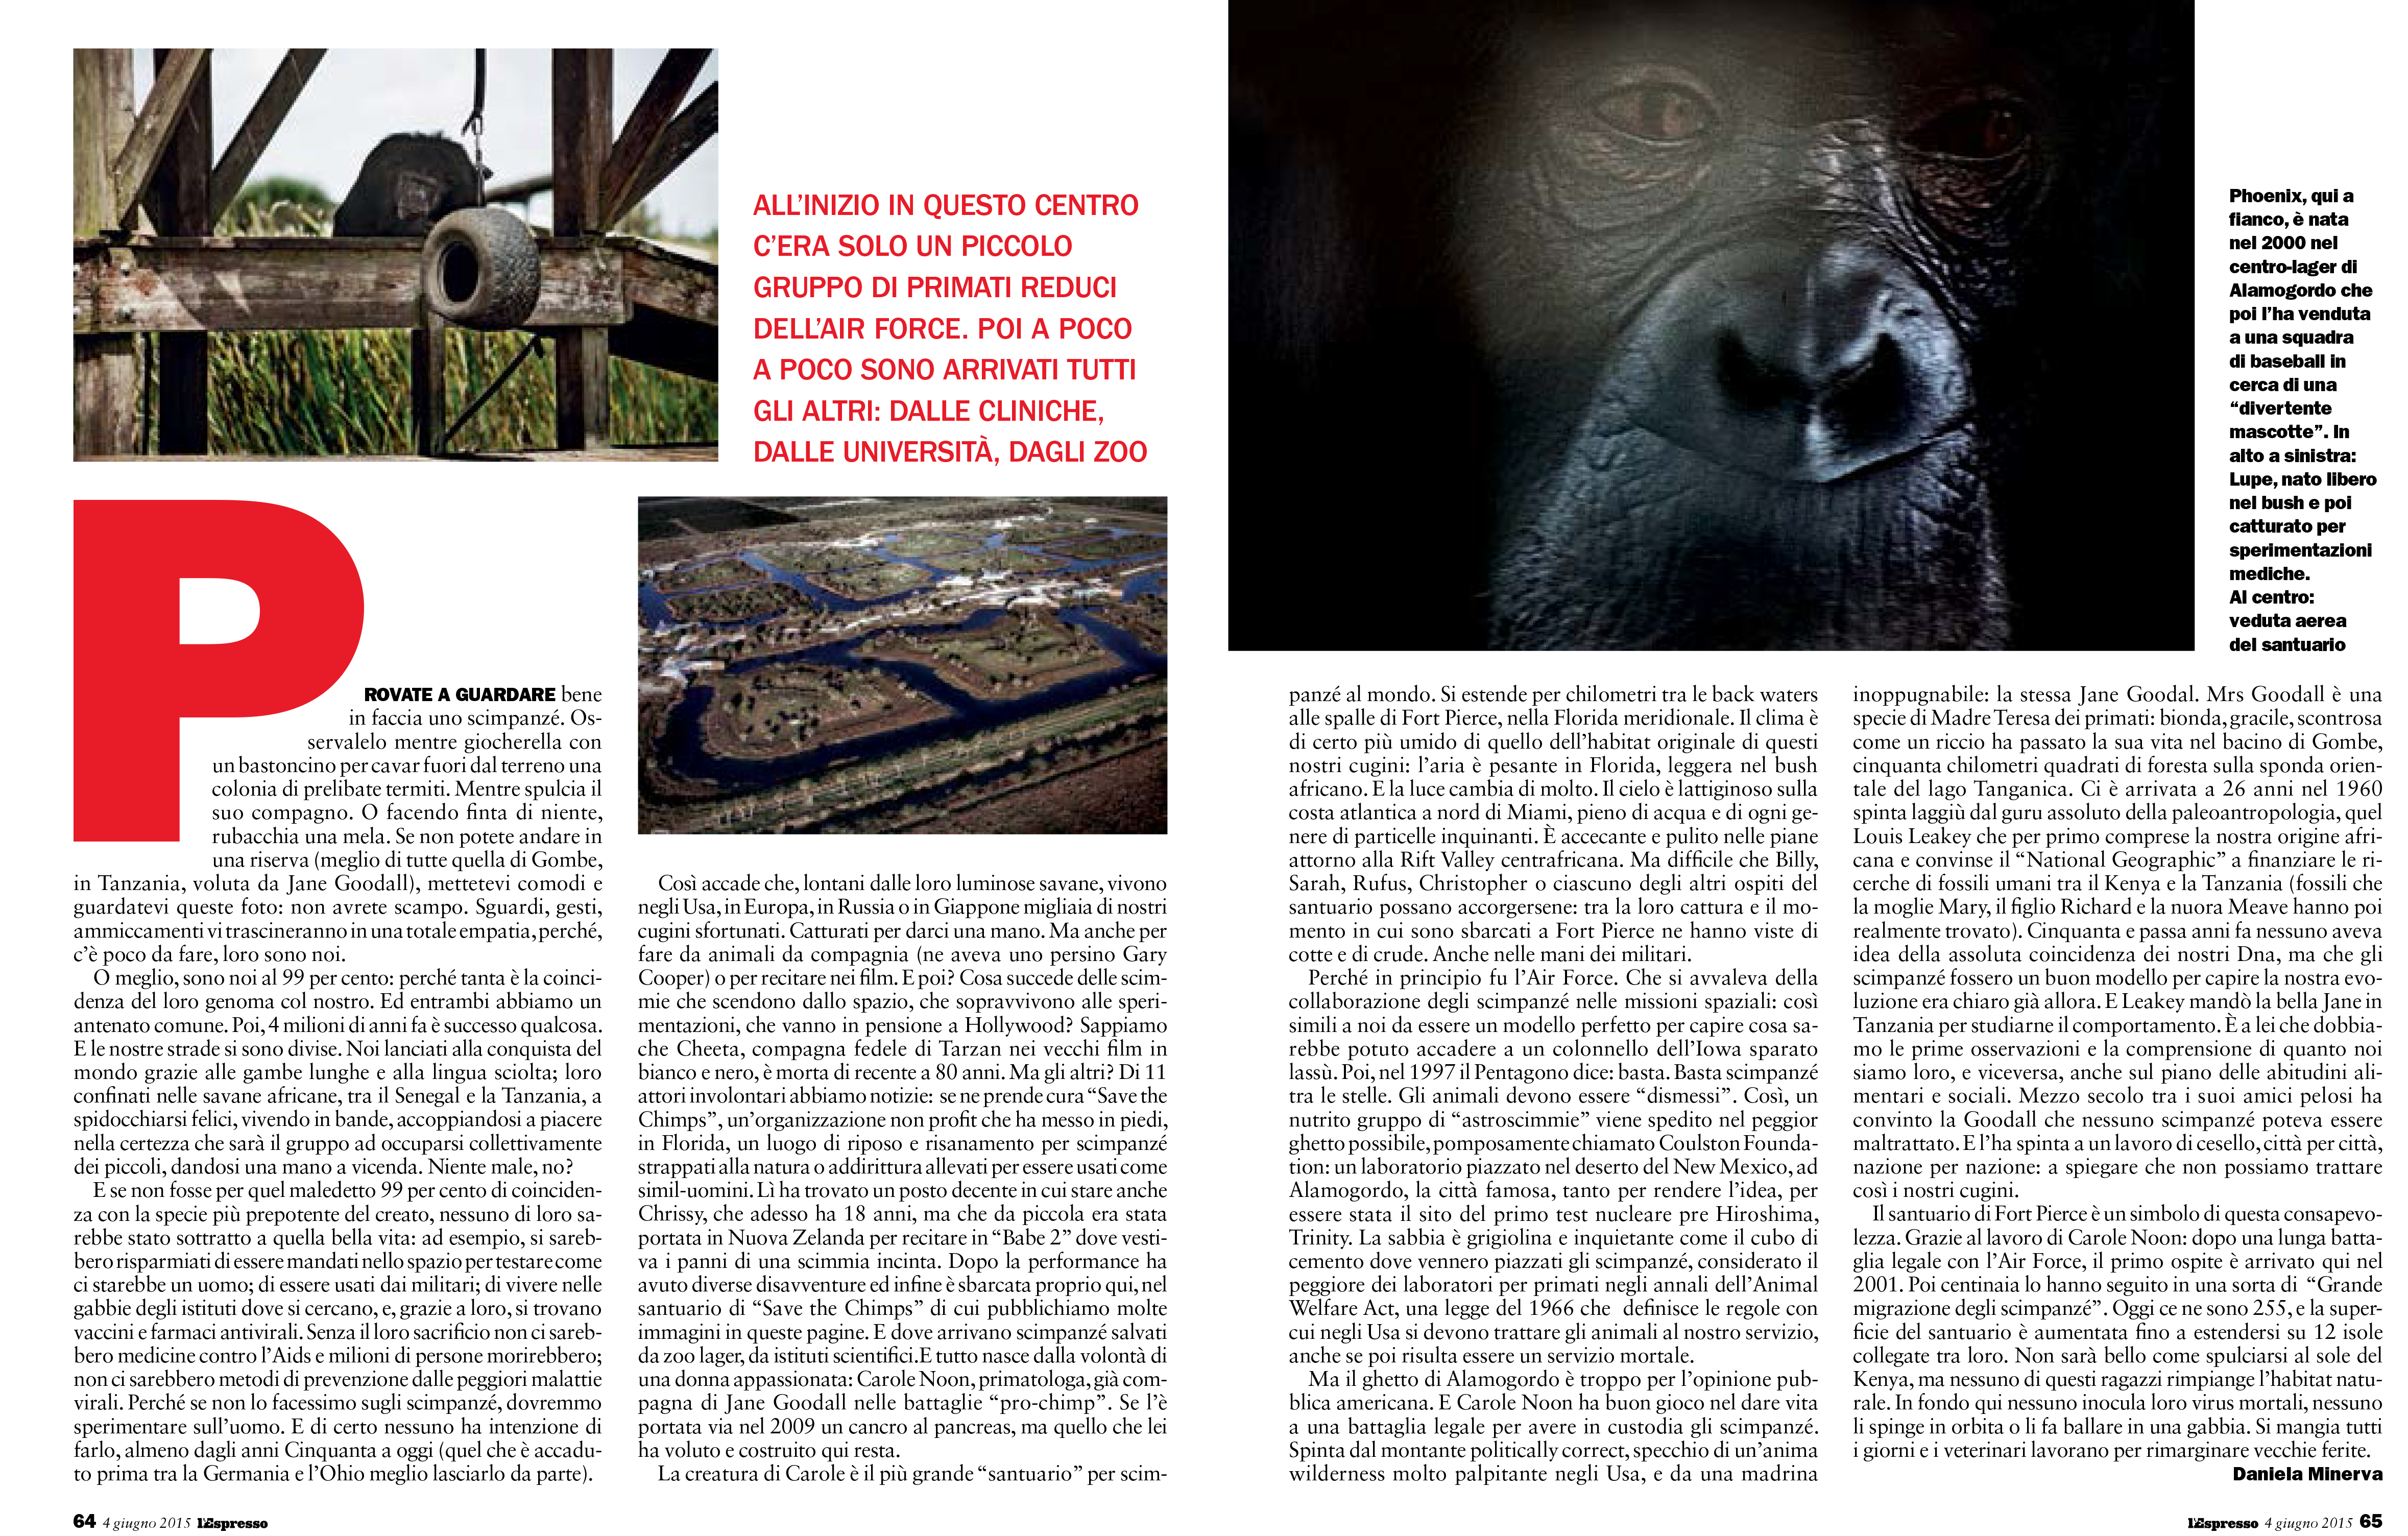 SAVE THE CHIMPS featured in L'ESPRESSO MAGAZINE-3